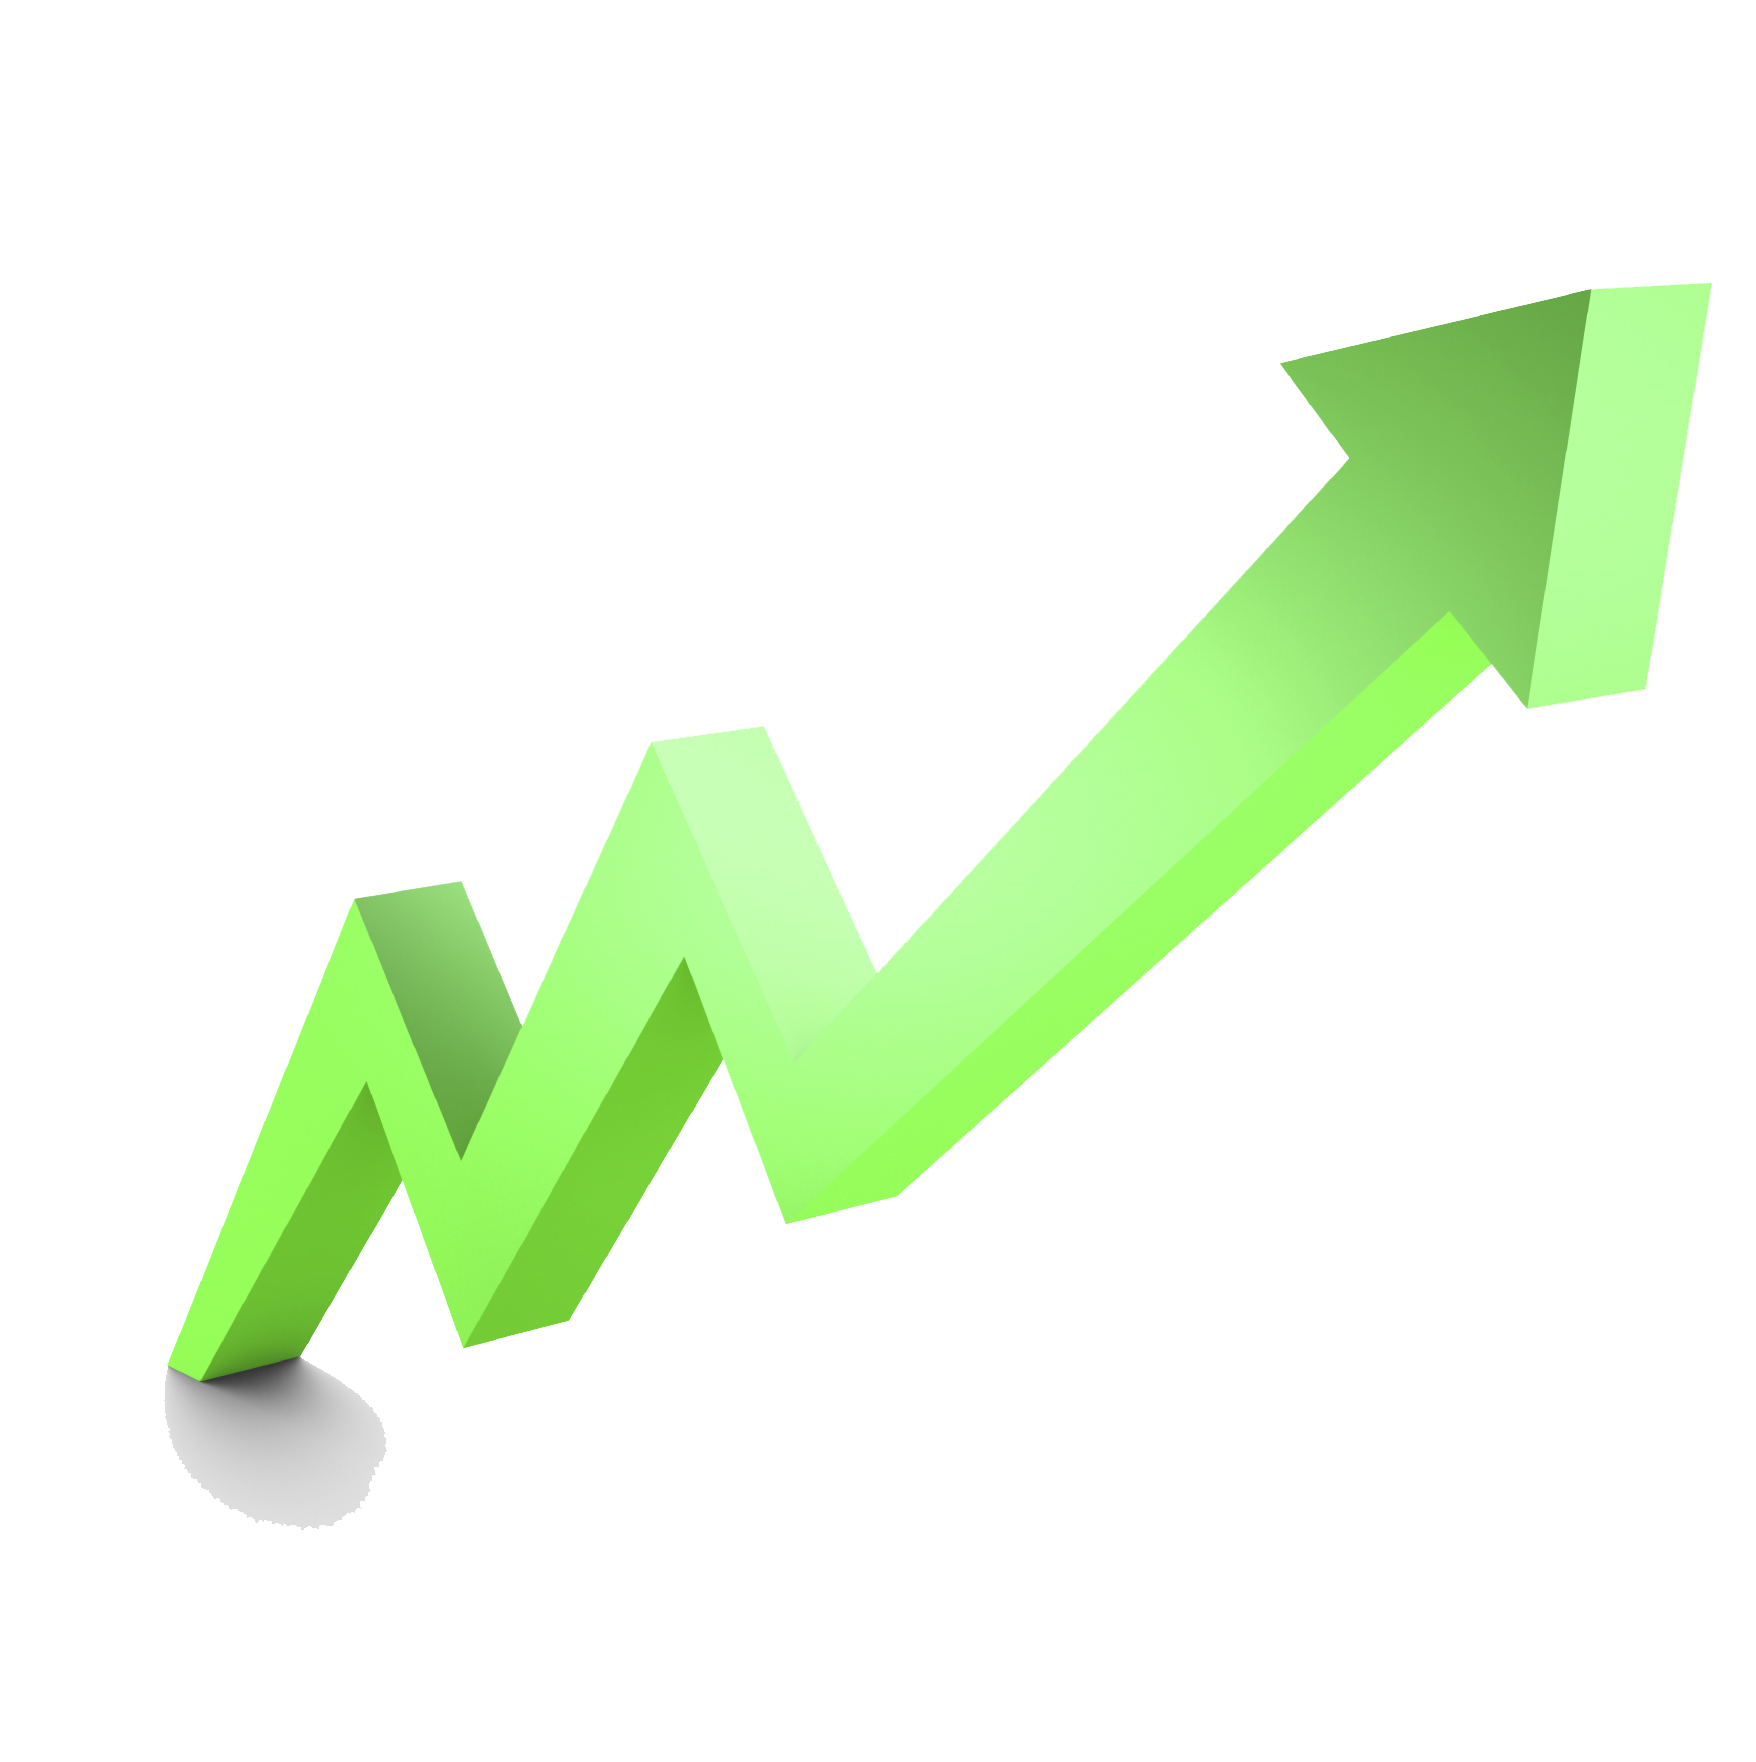 Stock market graph png. Up file mart